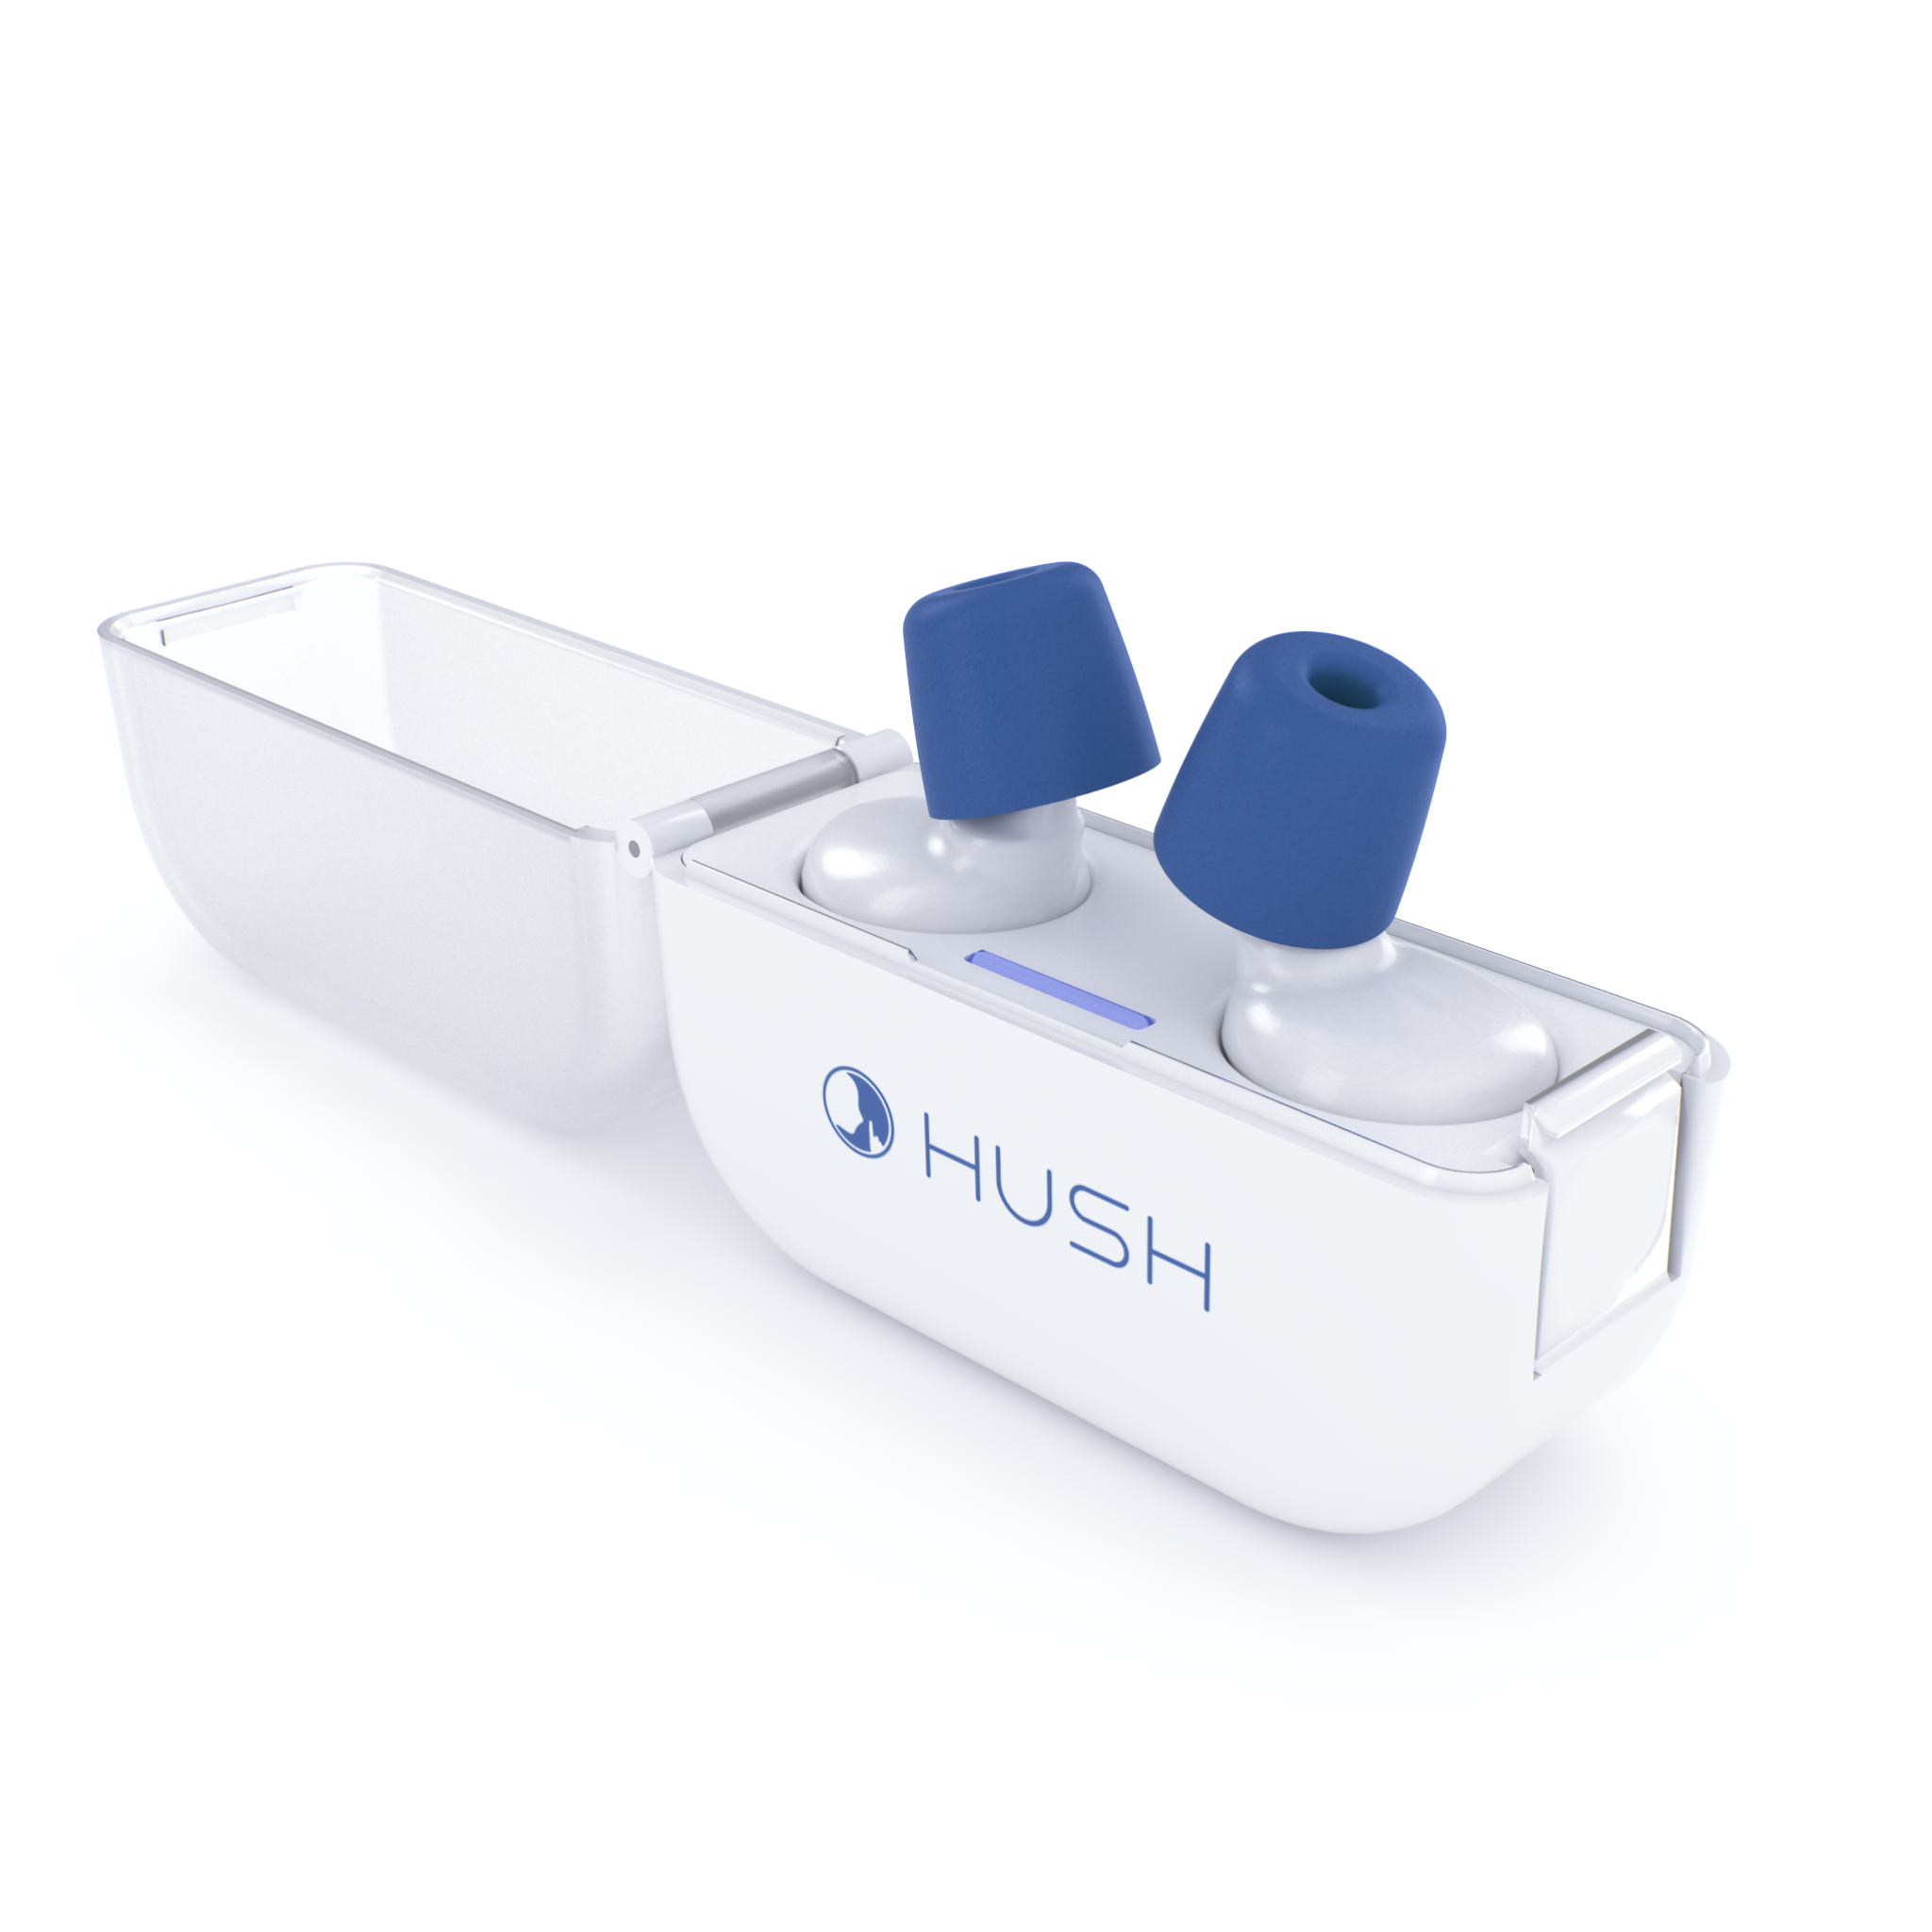 https://hush.technology/